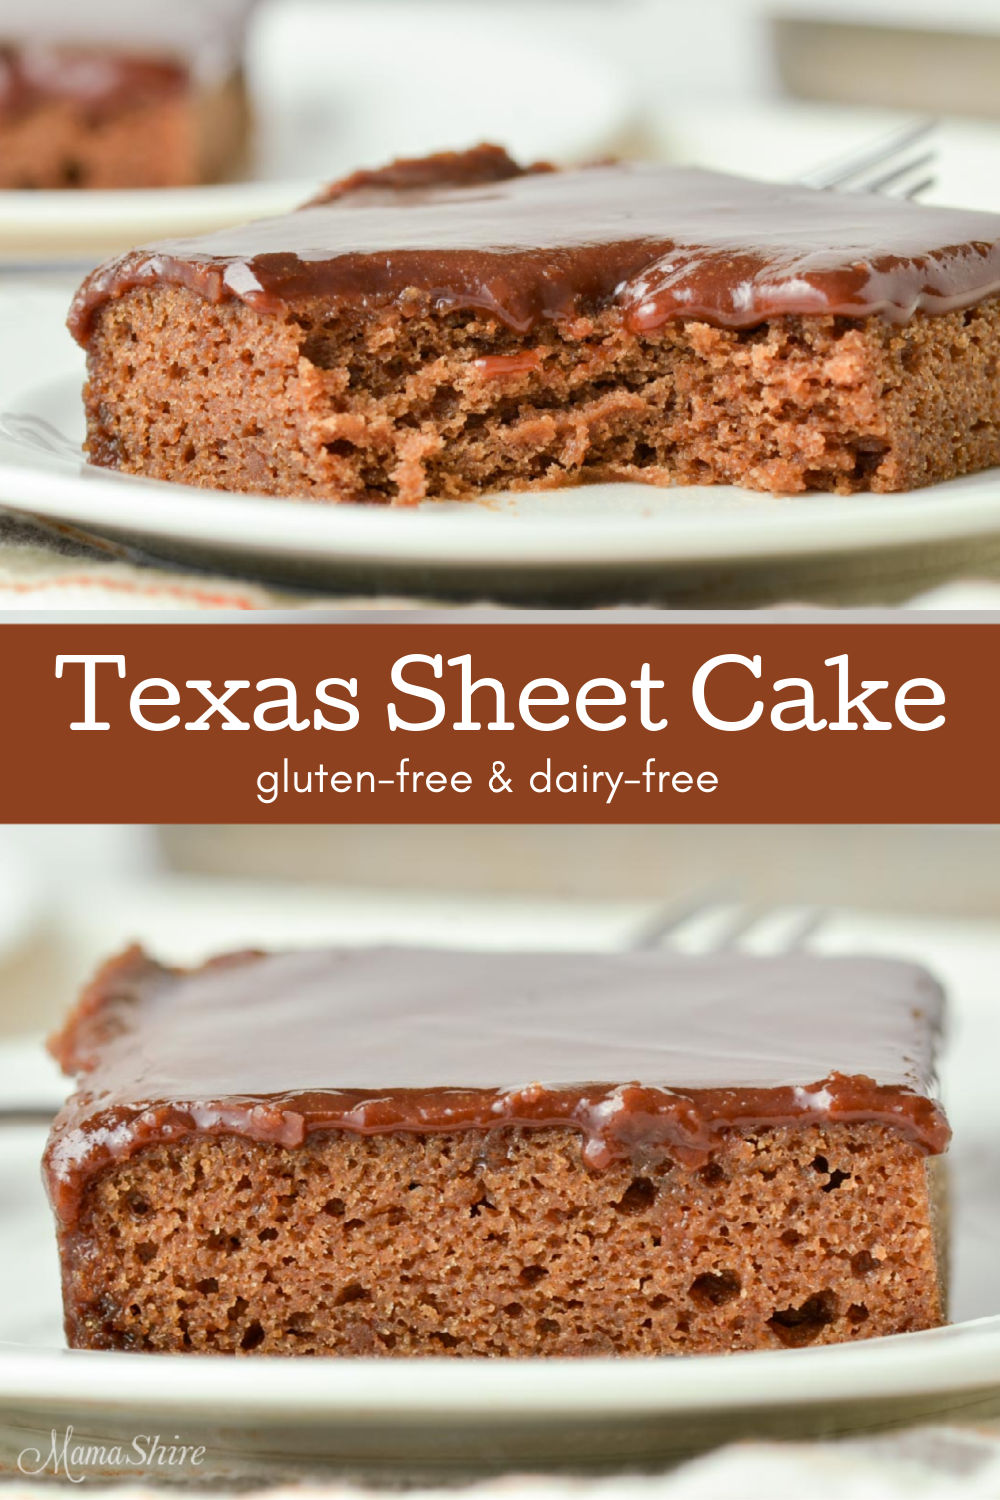 Two pictures of gluten-free Texas sheet cake the top one has a bite cut out of it.